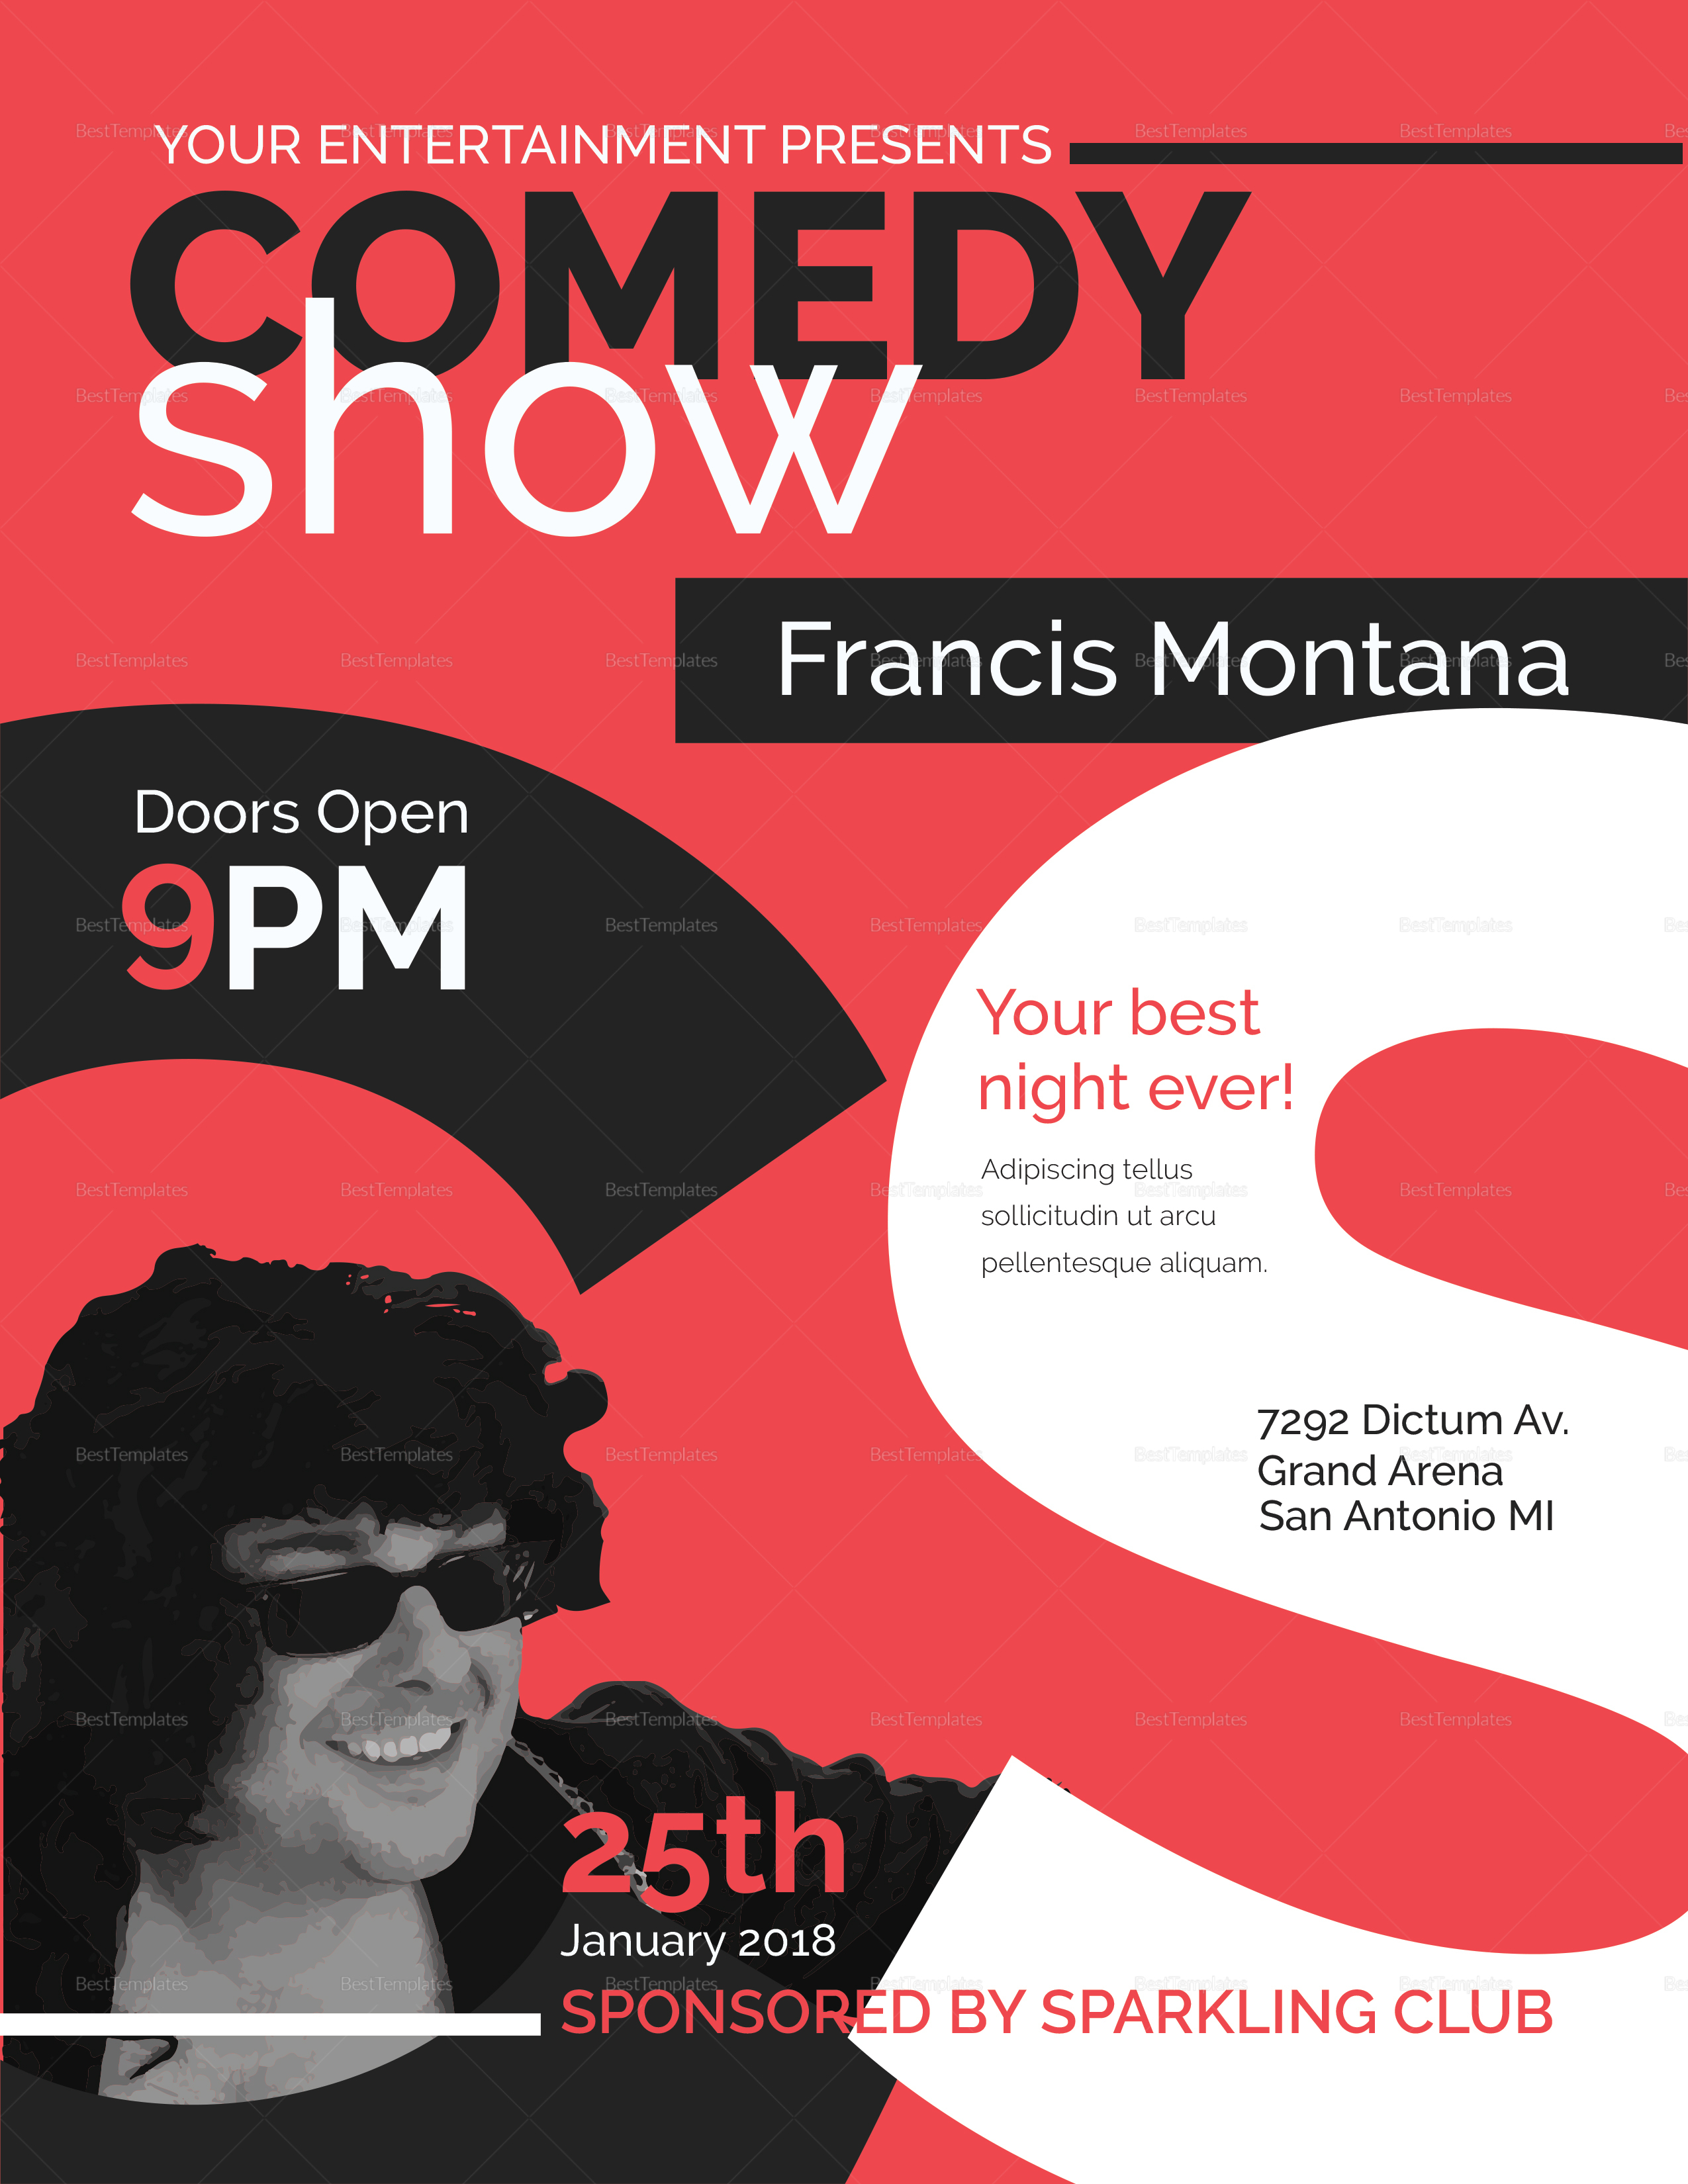 comedy show flyer design template in word  psd  publisher